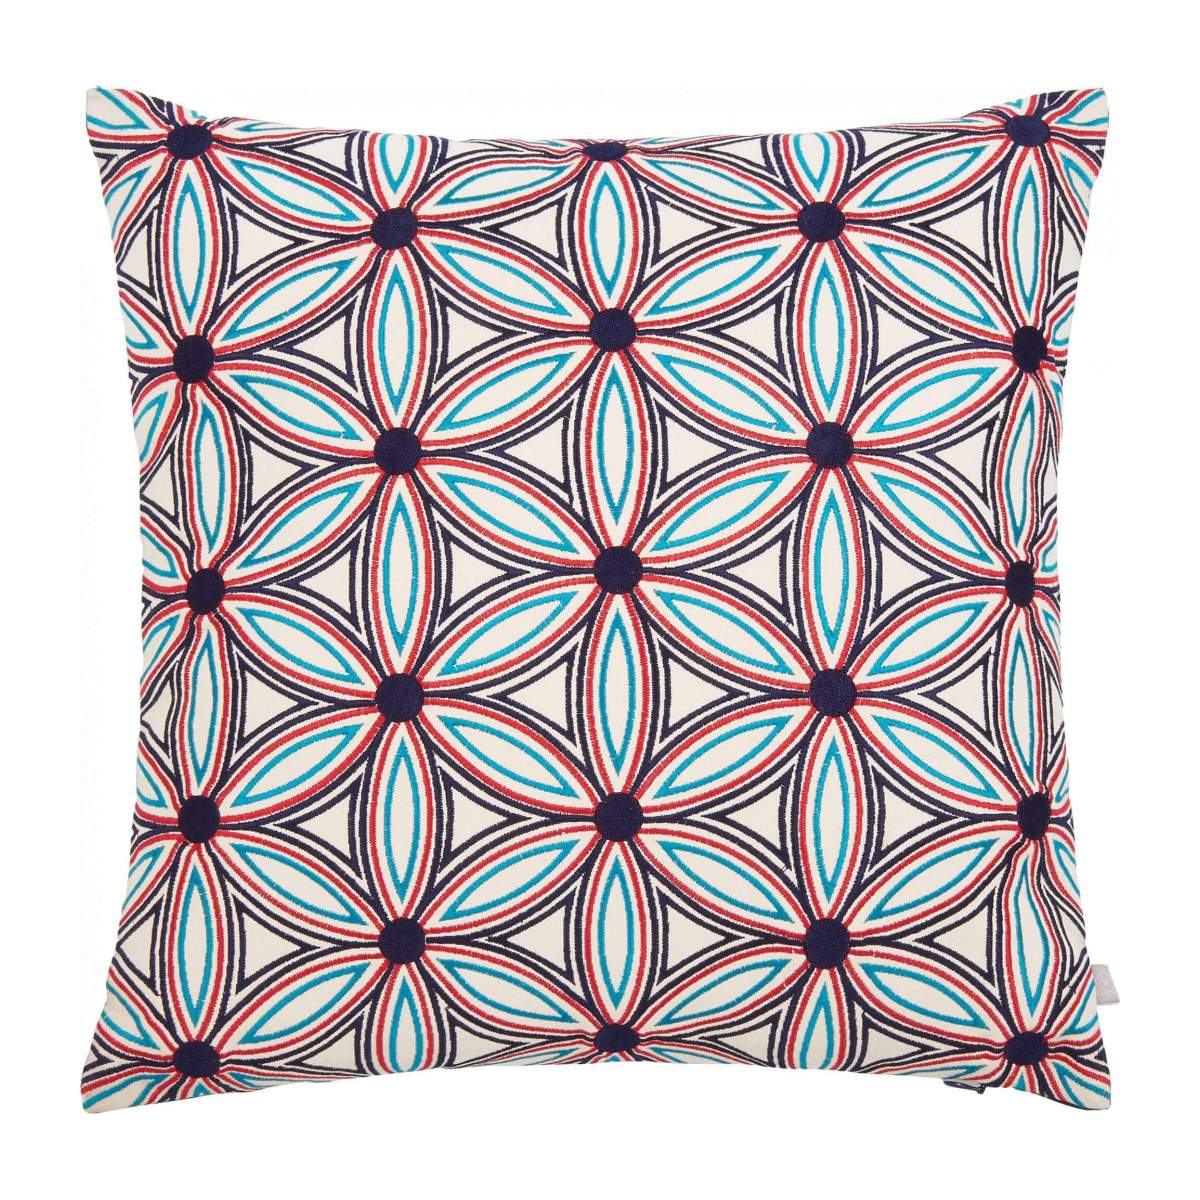 Embroidered cushion made of cotton 45x45cm, with patterns n°2